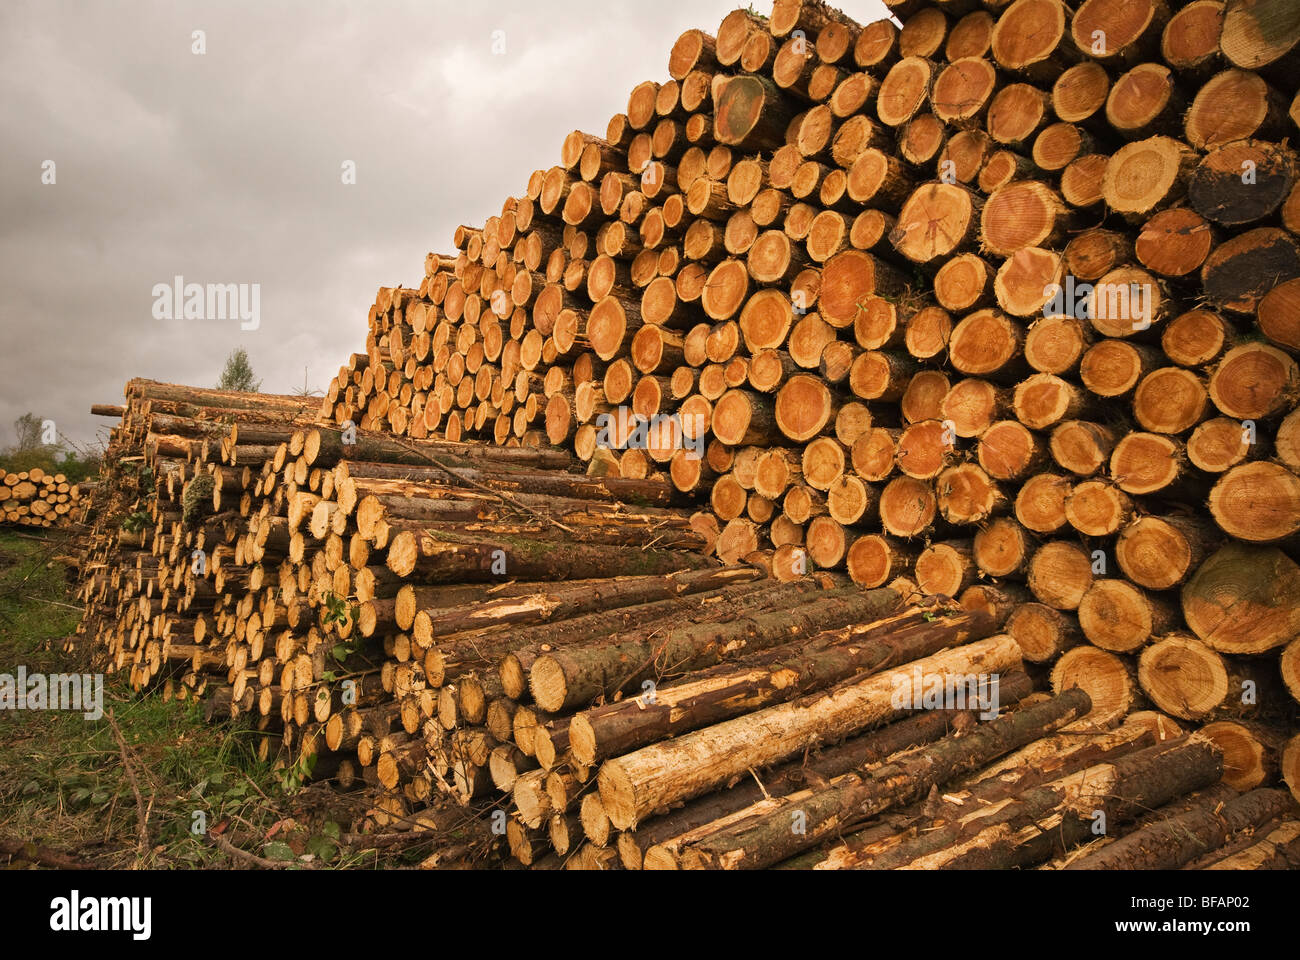 Stacked timber, Co Waterford, Eire - Stock Image